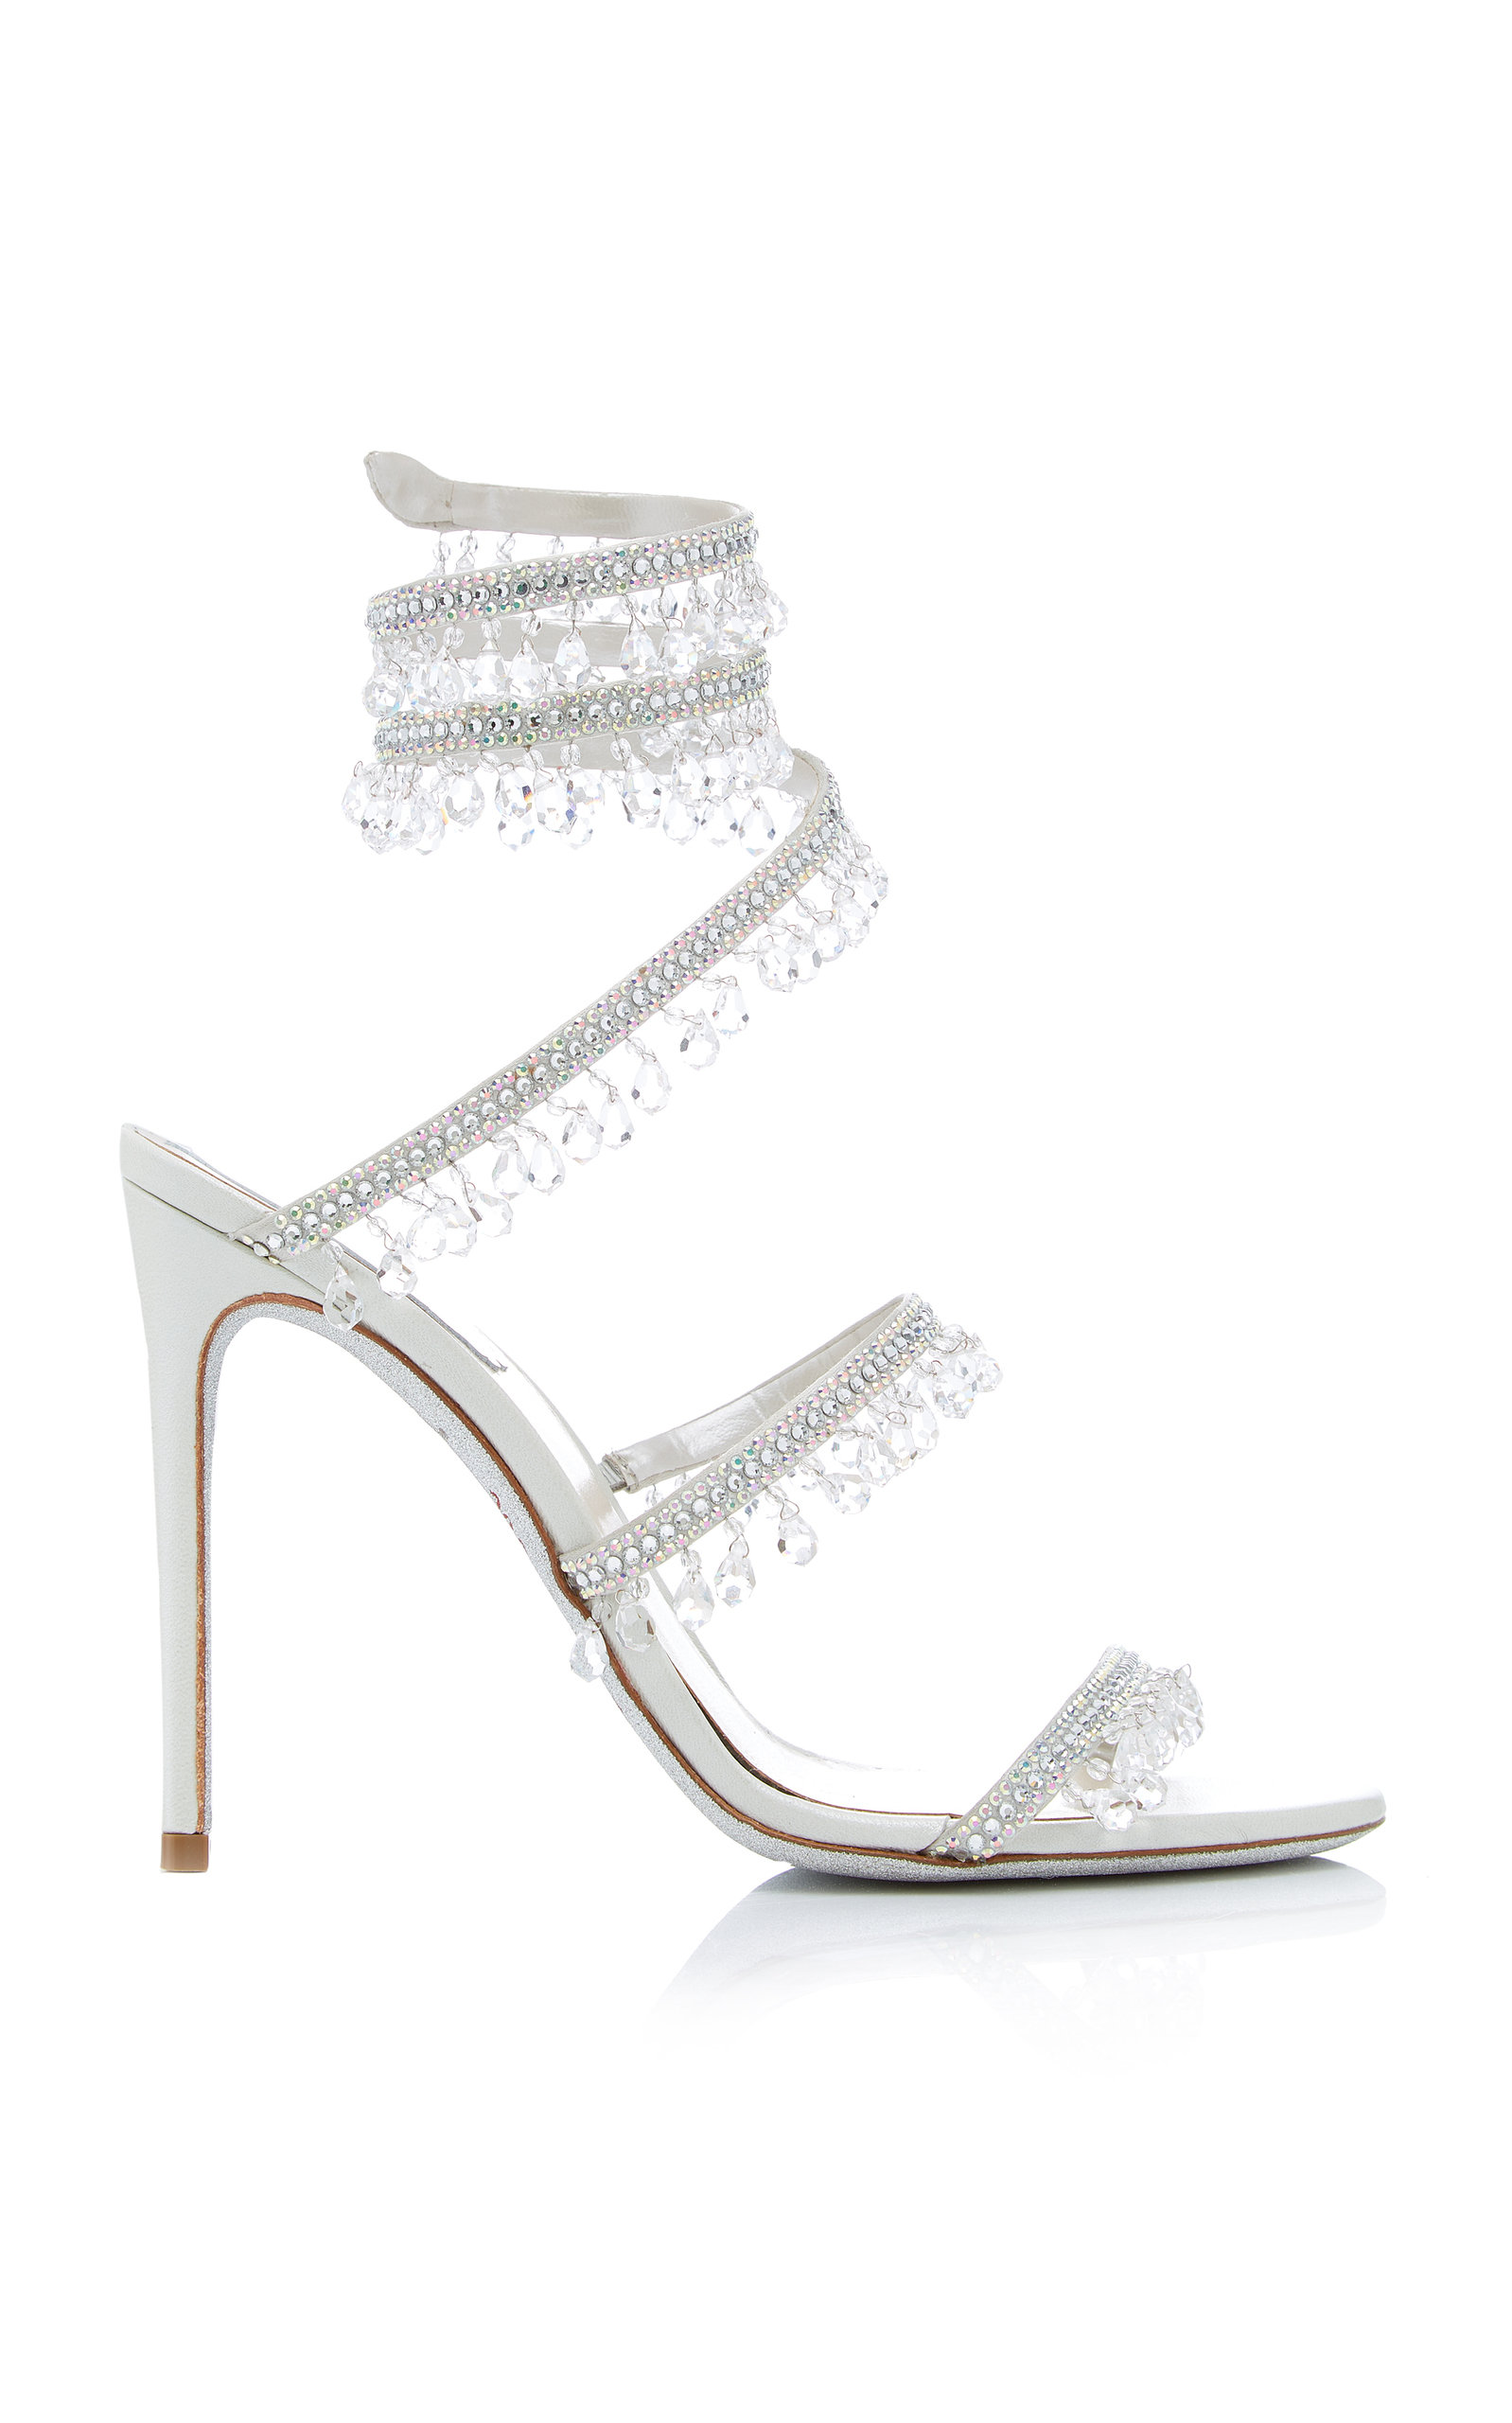 db4db924e Rene CaovillaExclusive Crystal-Embellished Sandal. CLOSE. Loading